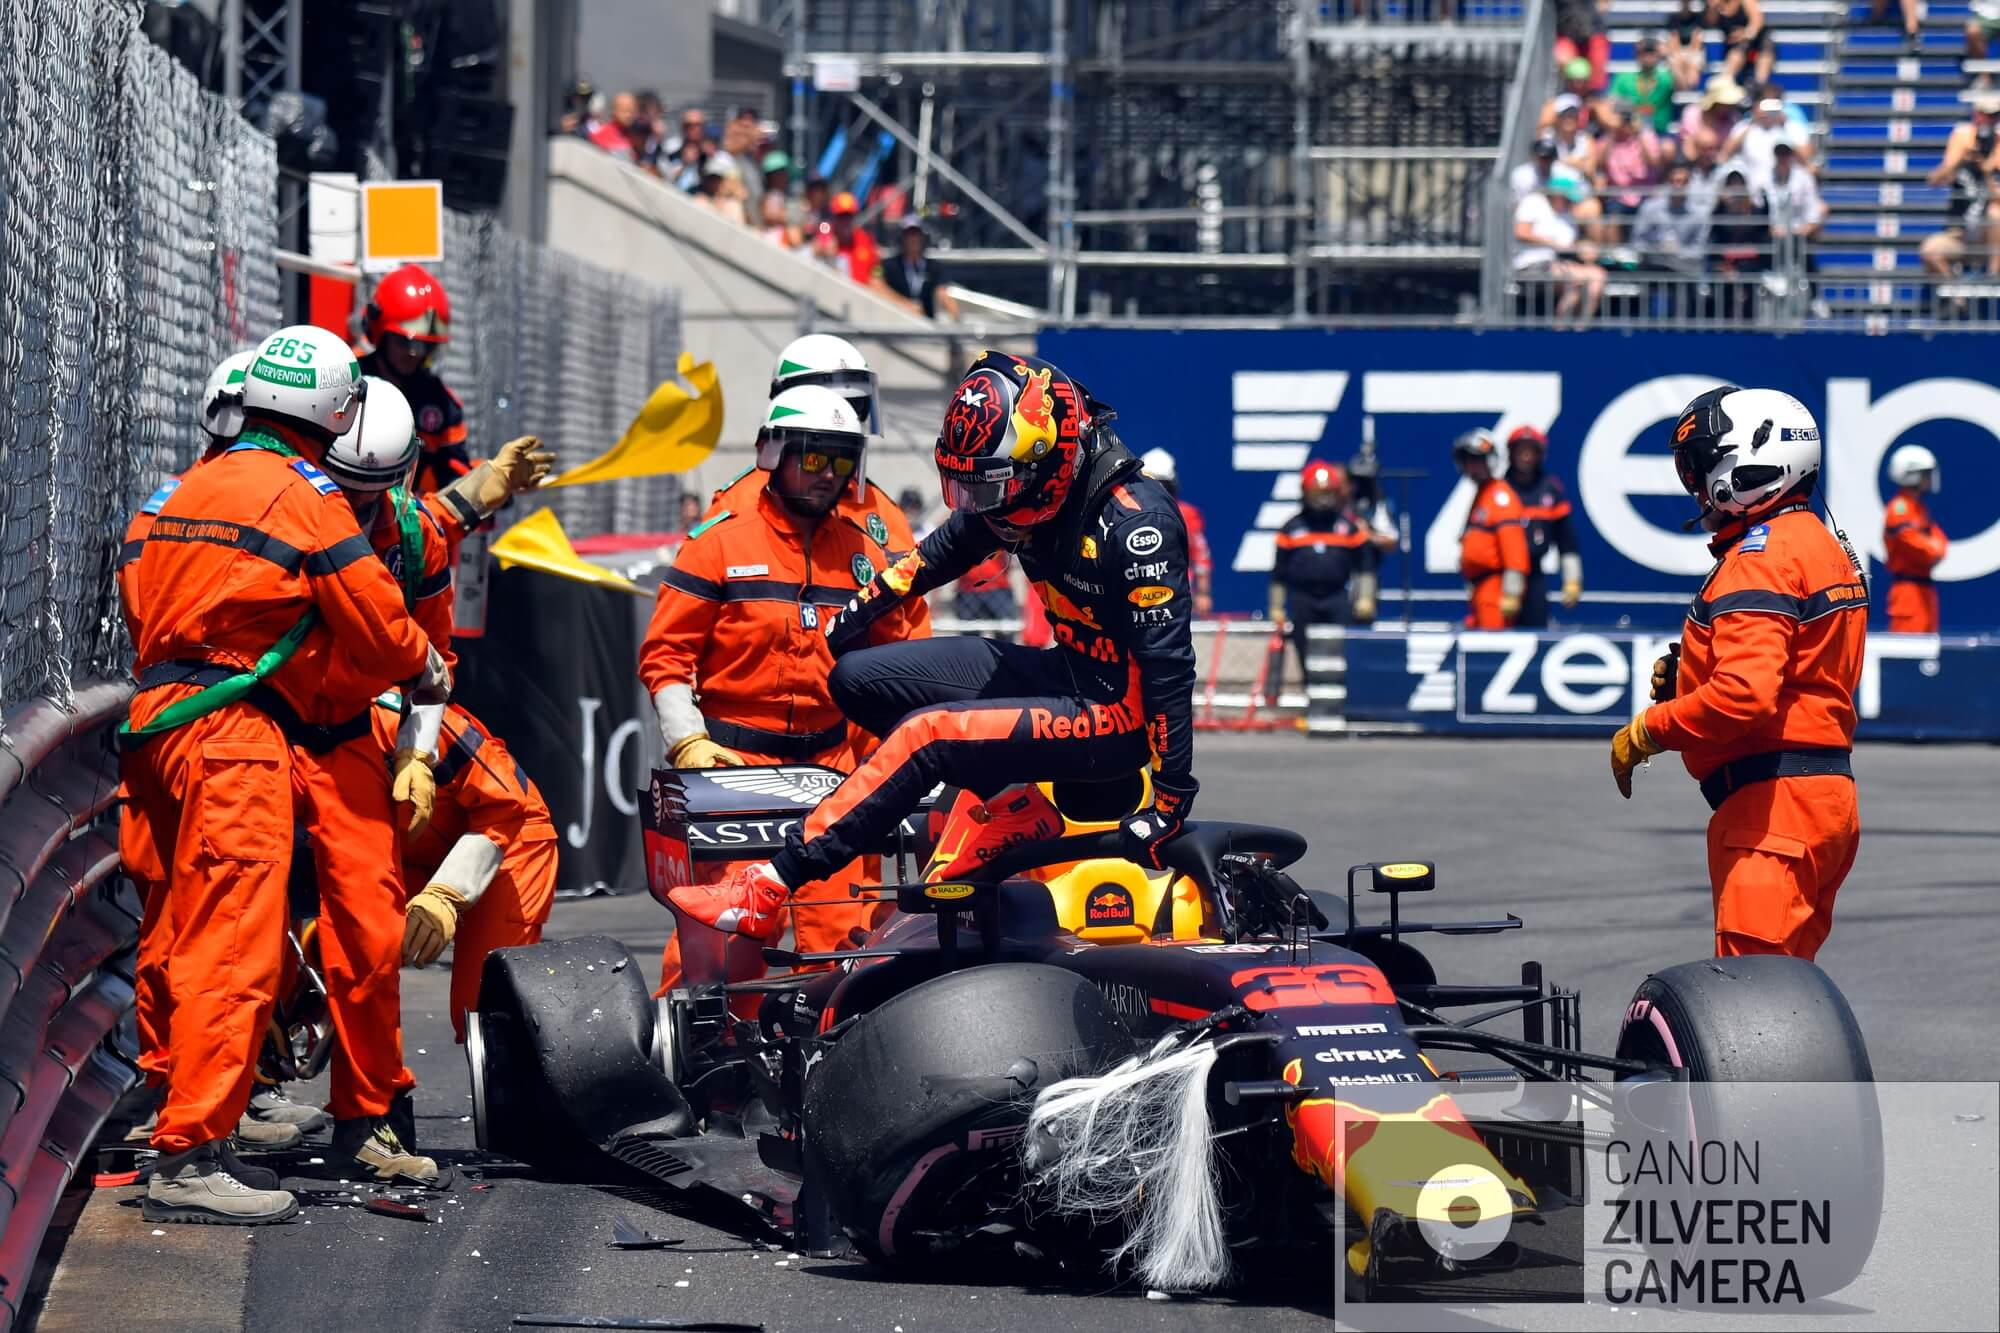 Crash Max Verstappen in saturday morning practice session, Red Bull Racing, Grand Prix Monaco, Monaco street circuit, Formula1, Round 06, 2018.